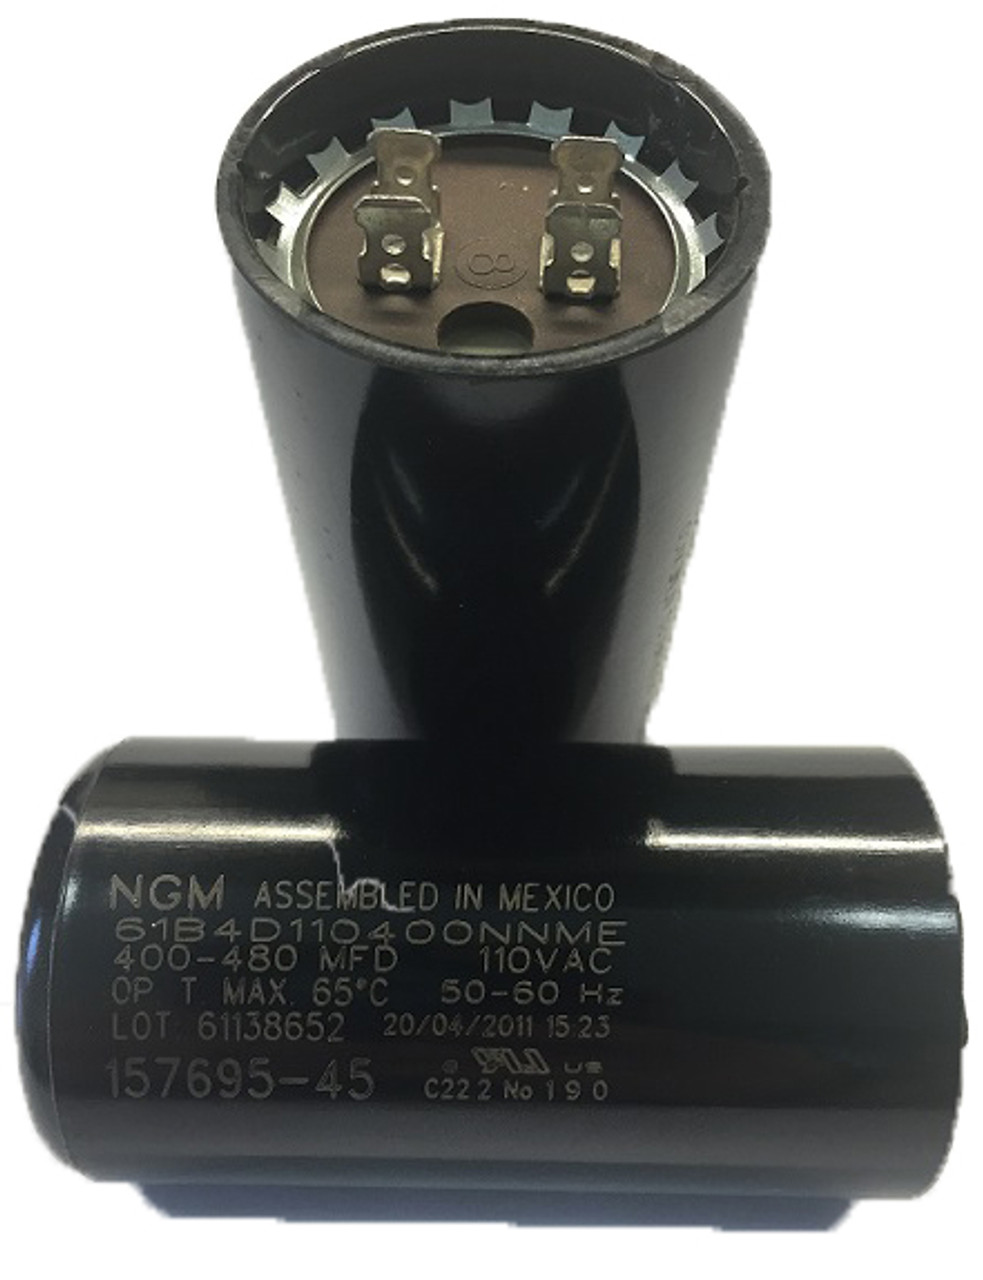 157695-45 oem capacitor 400-480 mfd (15769545) - csh electric motor supply